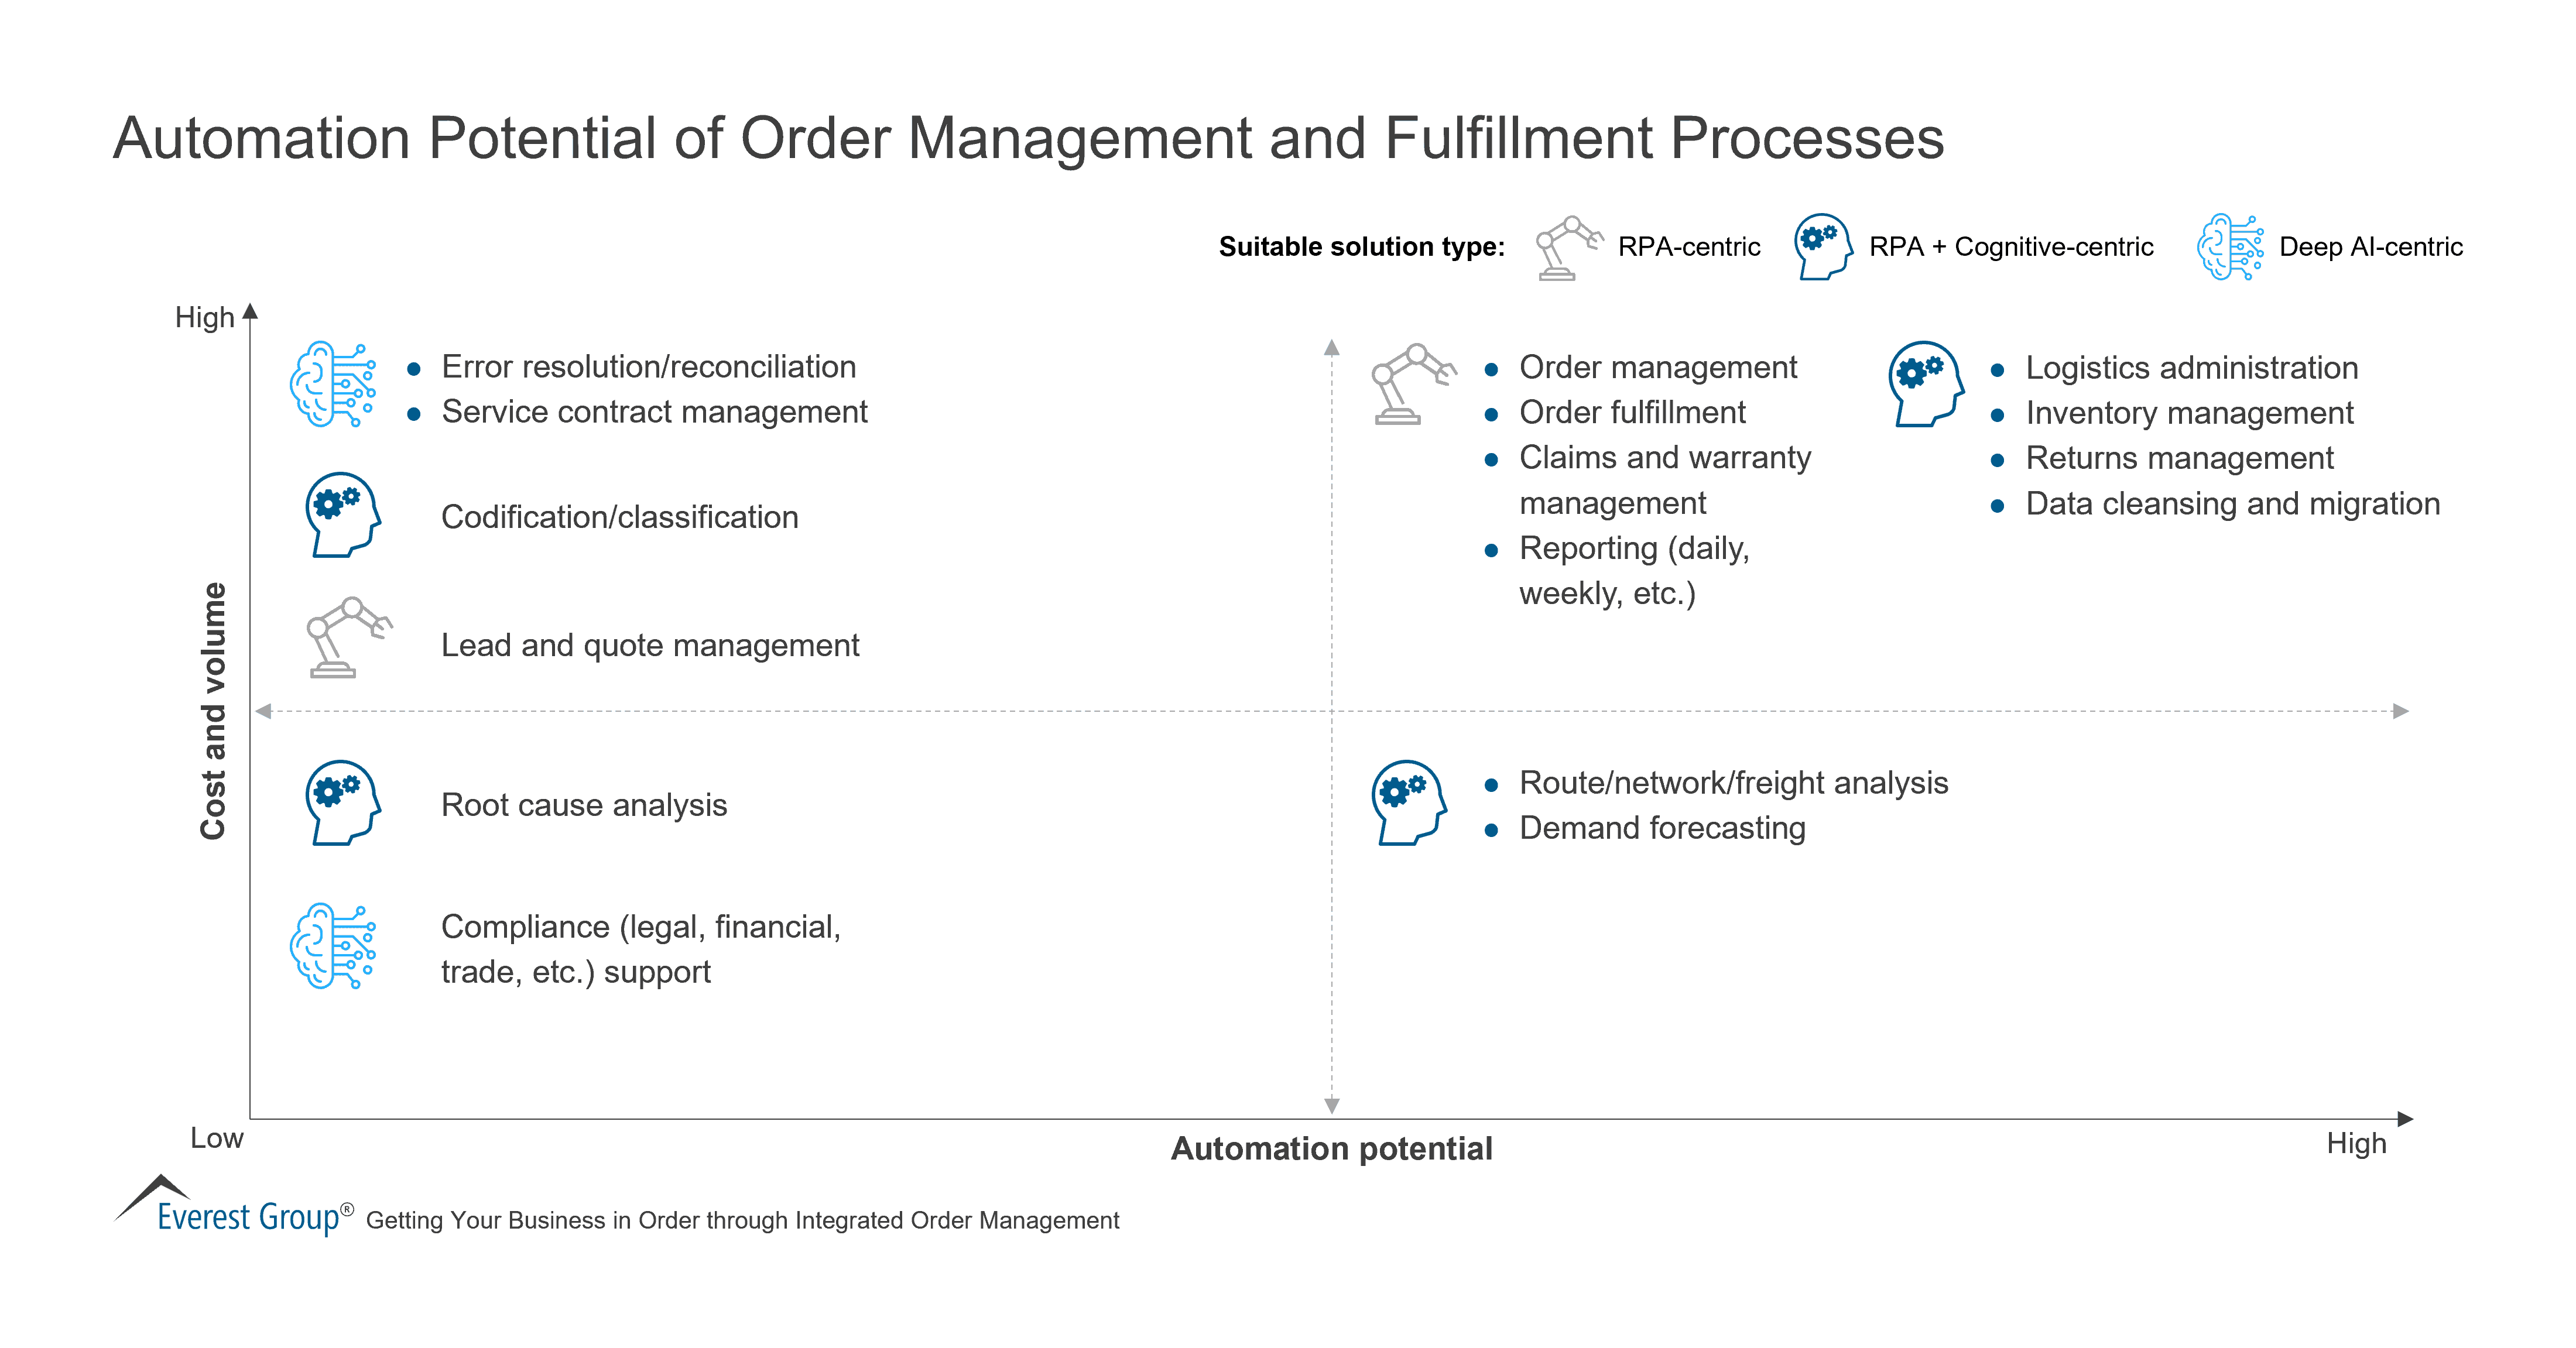 Automation Potential of Order Management and Fulfillment Processes